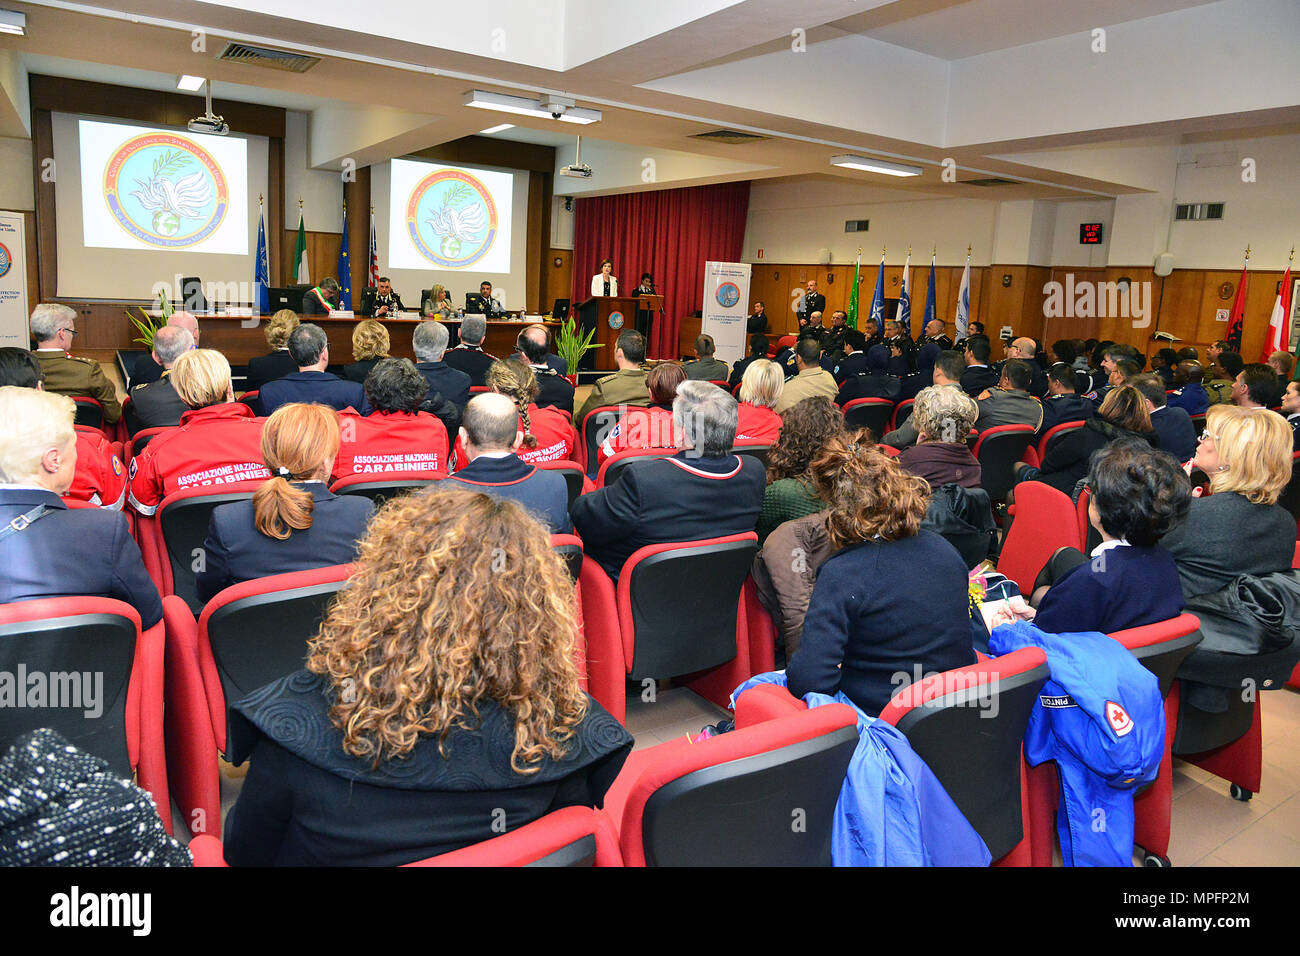 """Dr. Irene Fellin, Gender Consultant International Affairs Institute Roma, Italy , addresses attendees at the opening ceremony of the 5th """"Gender Protection in Peace Operations"""" Course at the  Center of Excellence for Stability Police Units (CoESPU) in Vicenza, Italy, Mar. 8, 2017. The event brought together military and civic leaders of the local community and offered the opportunity to celebrate International Women's Day. (U.S. Army Photo by Visual Information Specialist Paolo Bovo/released) - Stock Image"""